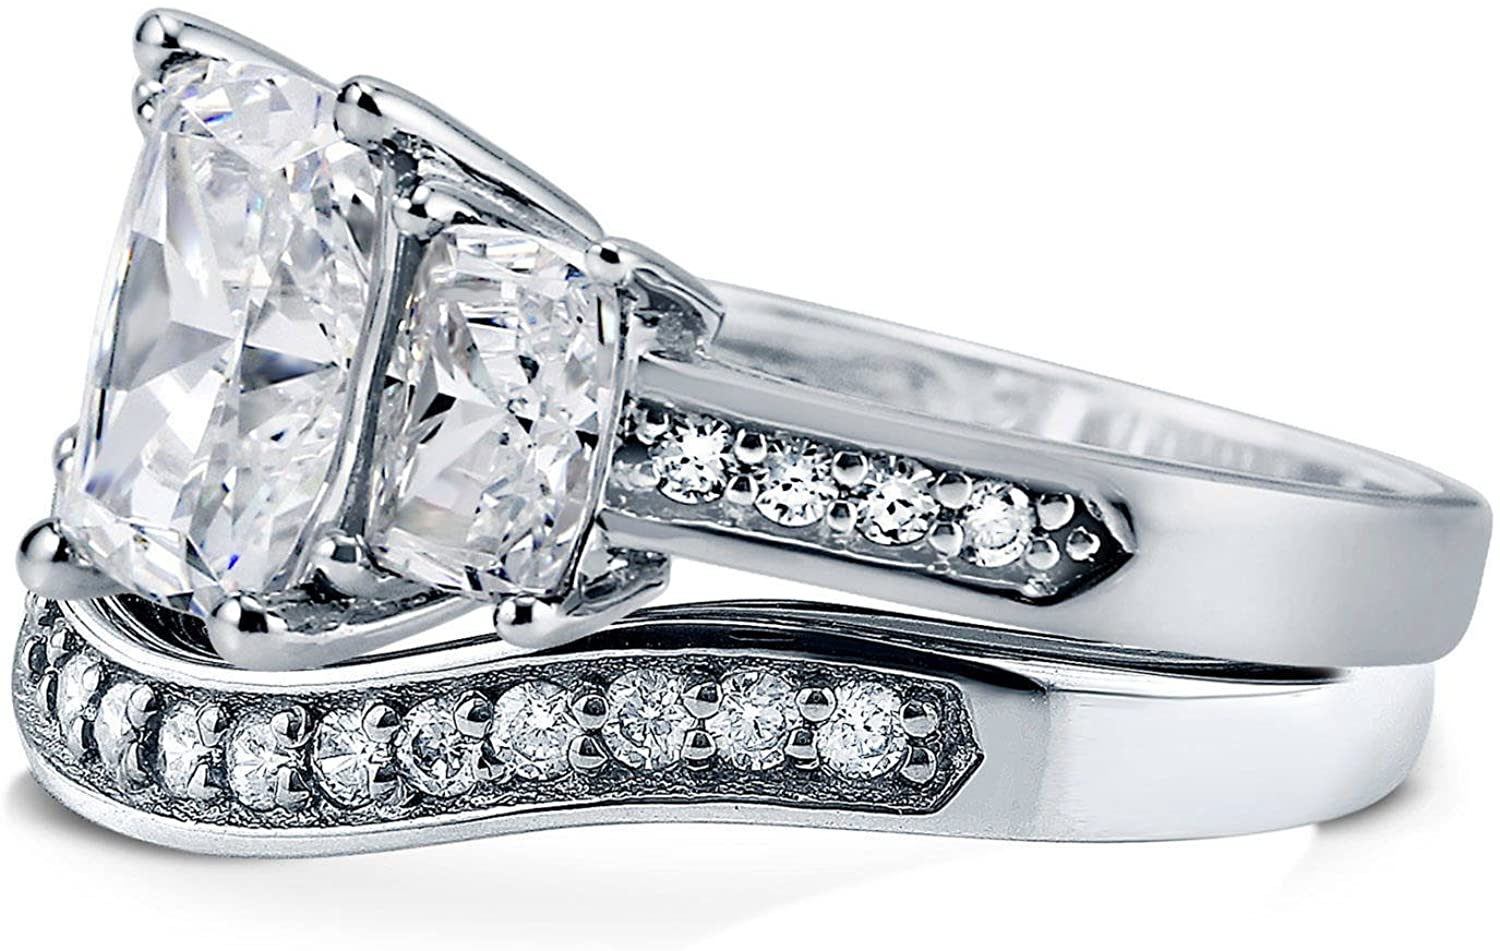 BERRICLE Rhodium Plated Sterling Silver Cushion Cut Cubic Zirconia CZ 3-Stone Anniversary Engagement Wedding Ring Set 4.31 CTW